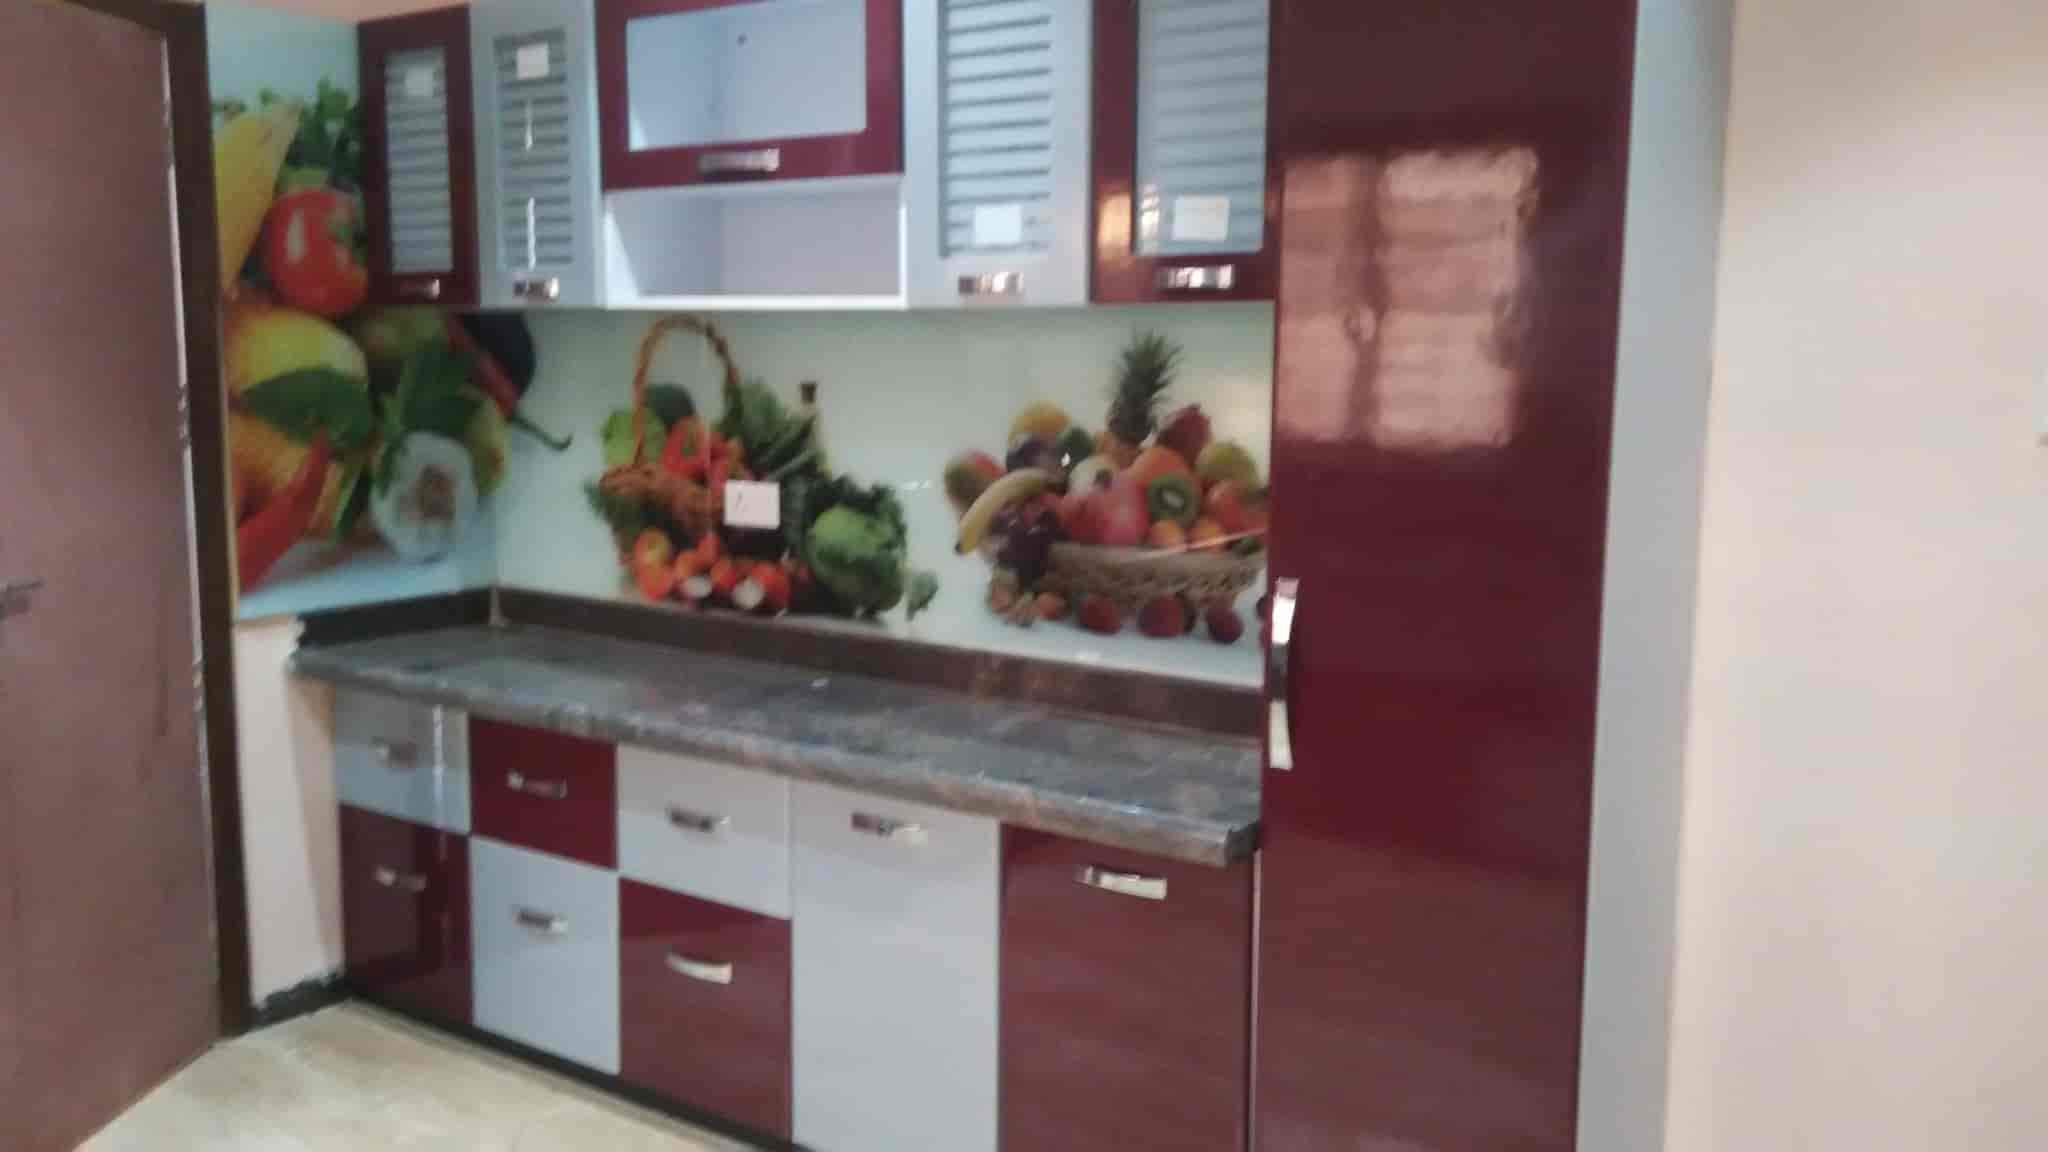 Maker kitchen and furnitech subhash nagar modular kitchen dealers in nagpur justdial